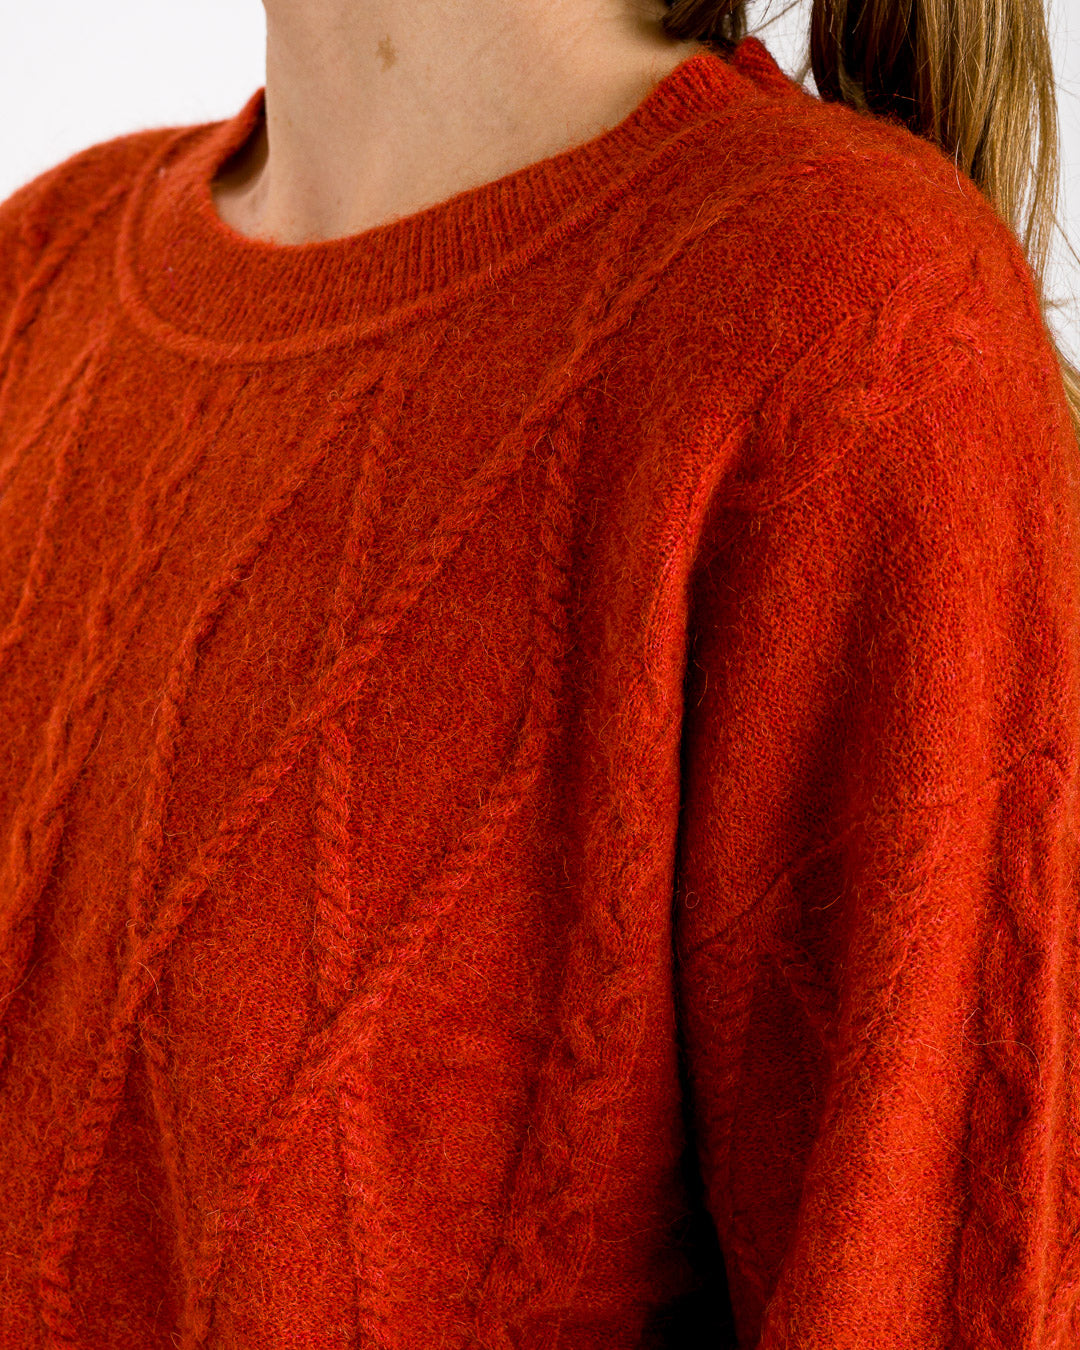 Marie Sixtine // Pullover Paulette Safran